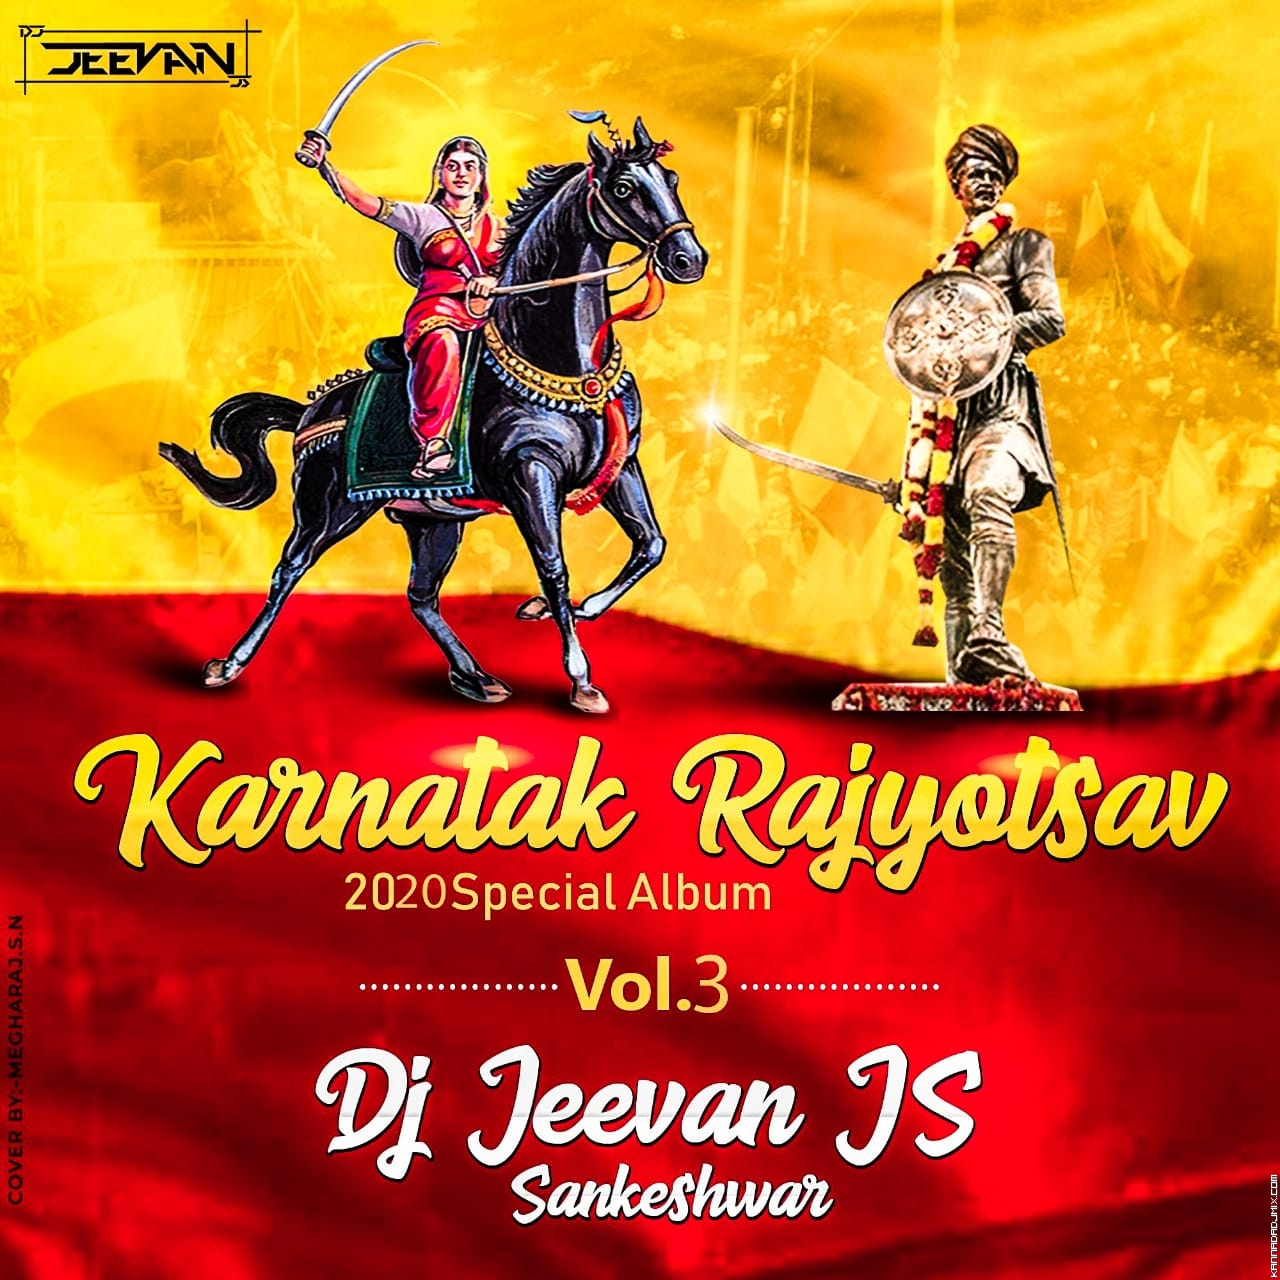 kittur Rani Channamage Jai Theme prat 2 2020 Mix by dj jeevan js sankeshwar.mp3